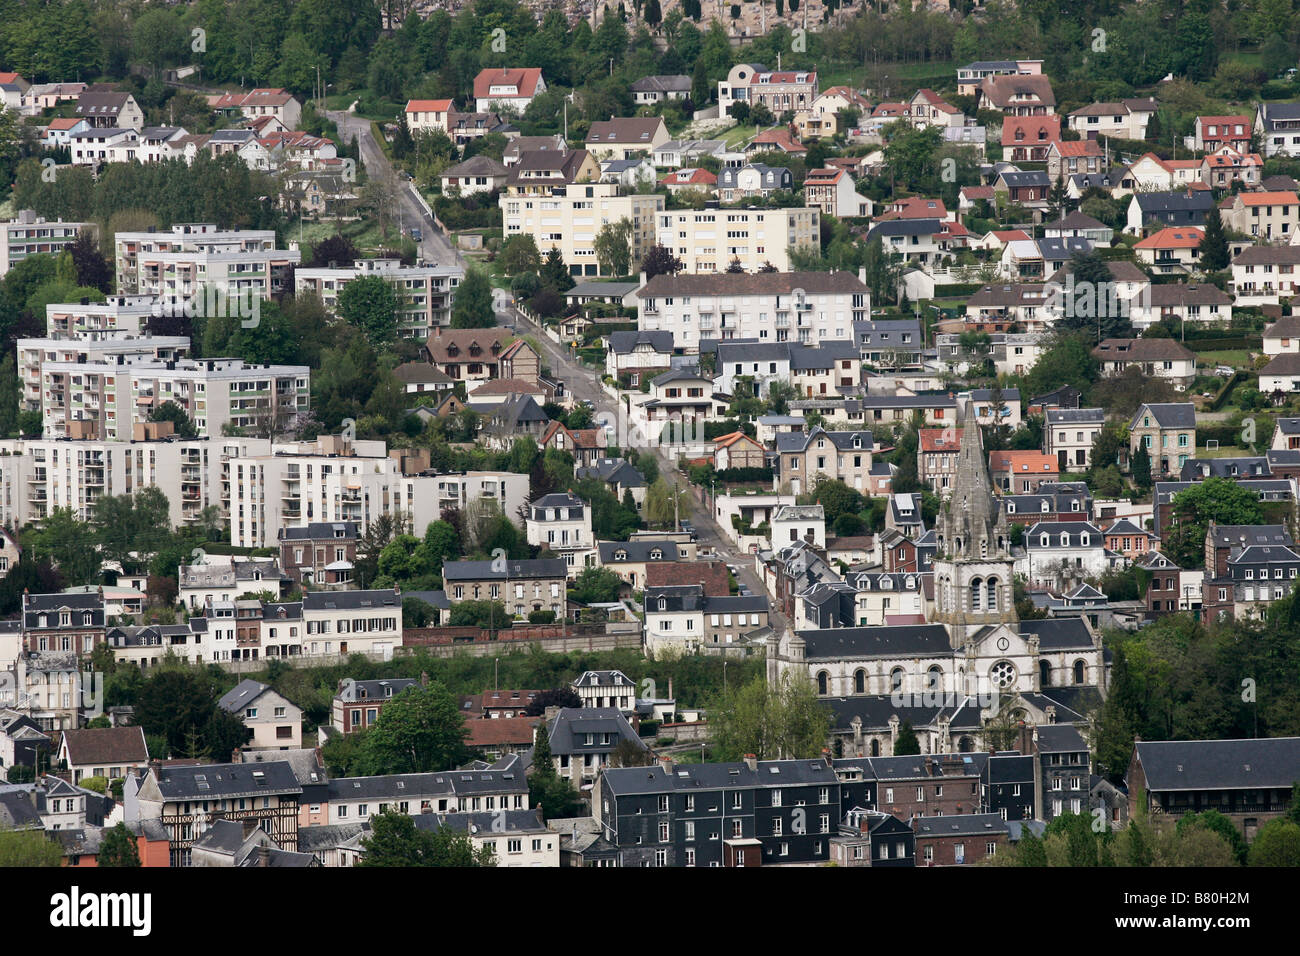 urbane sprawl and over population. An aerial view of Rouen France. - Stock Image